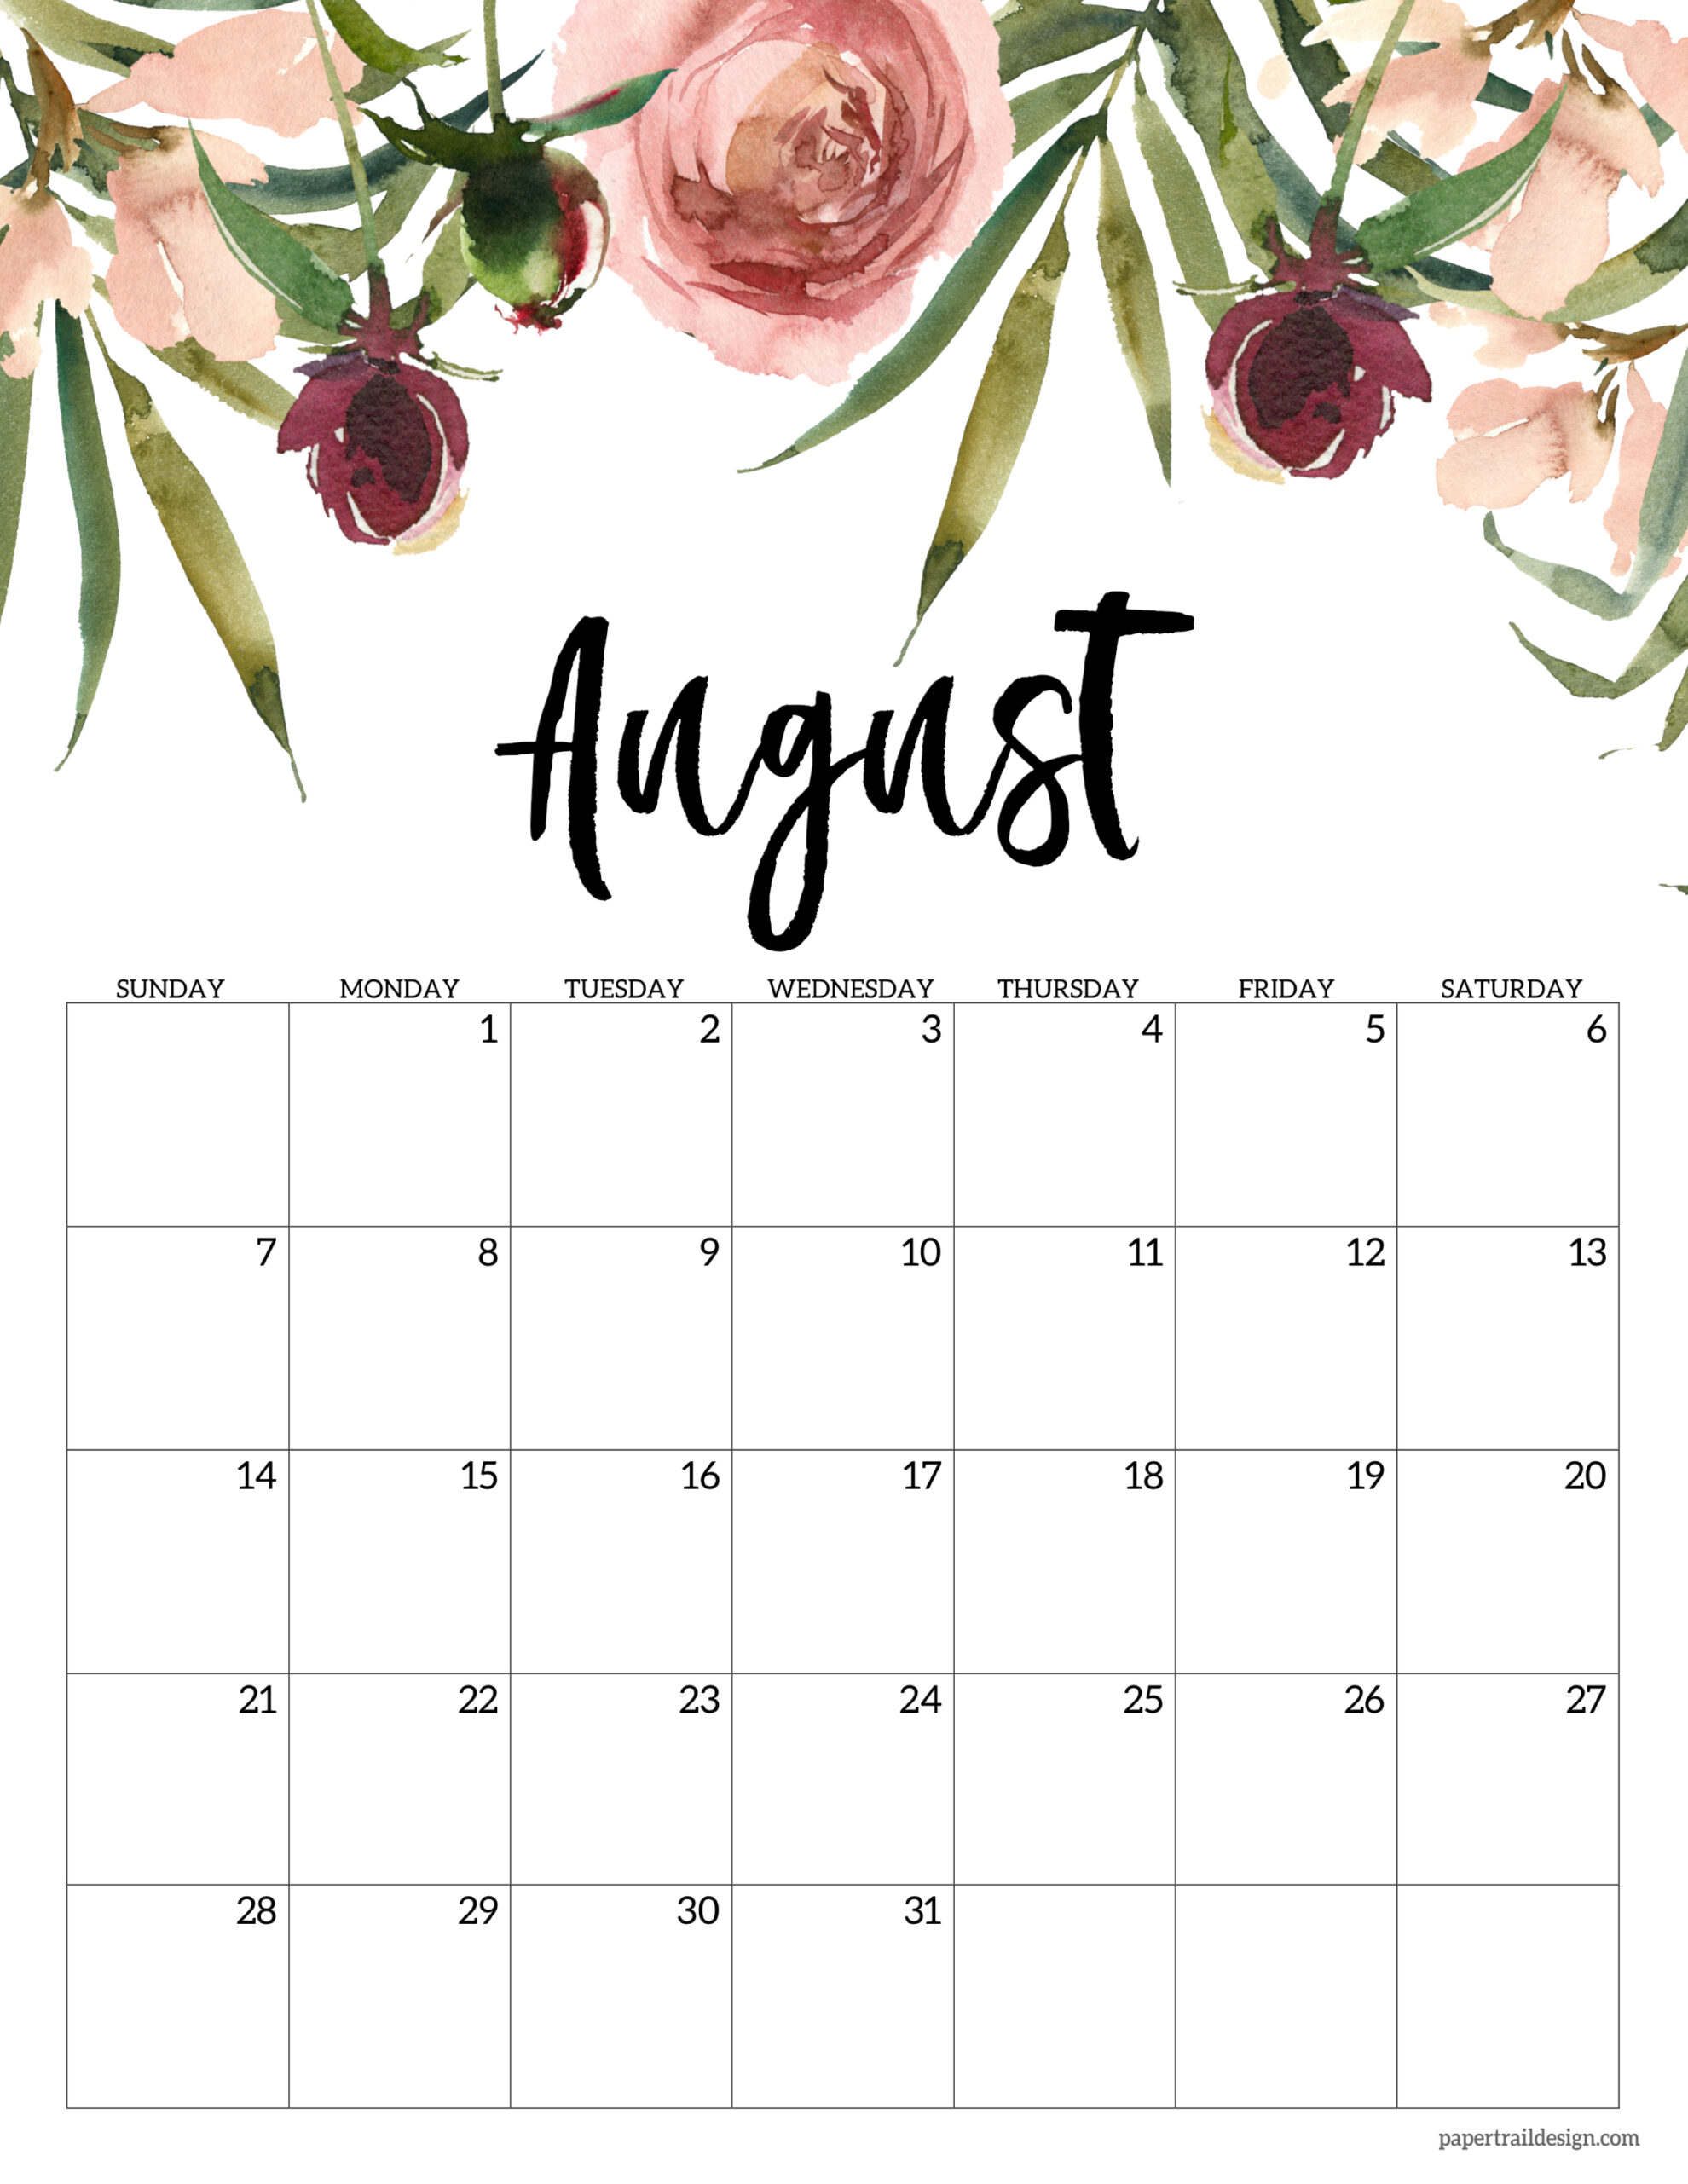 Sometimes it is handy to have a calendar for your current month on your cubical wall. Free 2022 Calendar Printable - Floral | Paper Trail Design